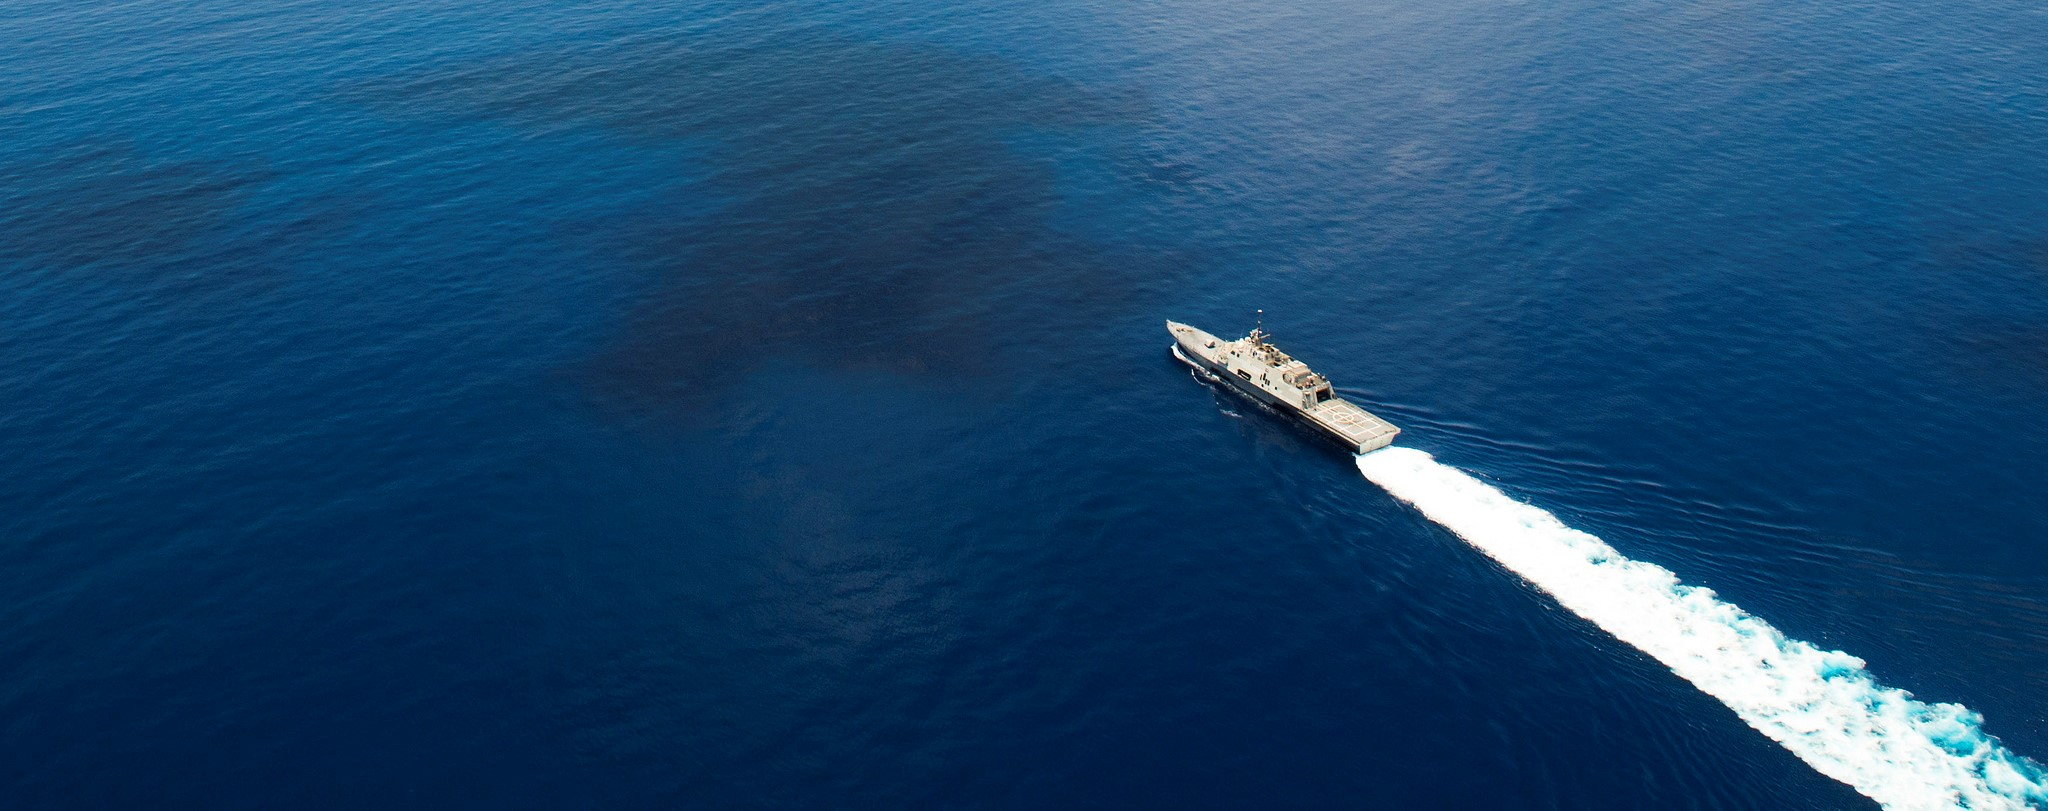 The USS Fort Worth on a routine patrol in international waters of the South China Sea near the Spratly Islands in 2015. (US Navy photo)